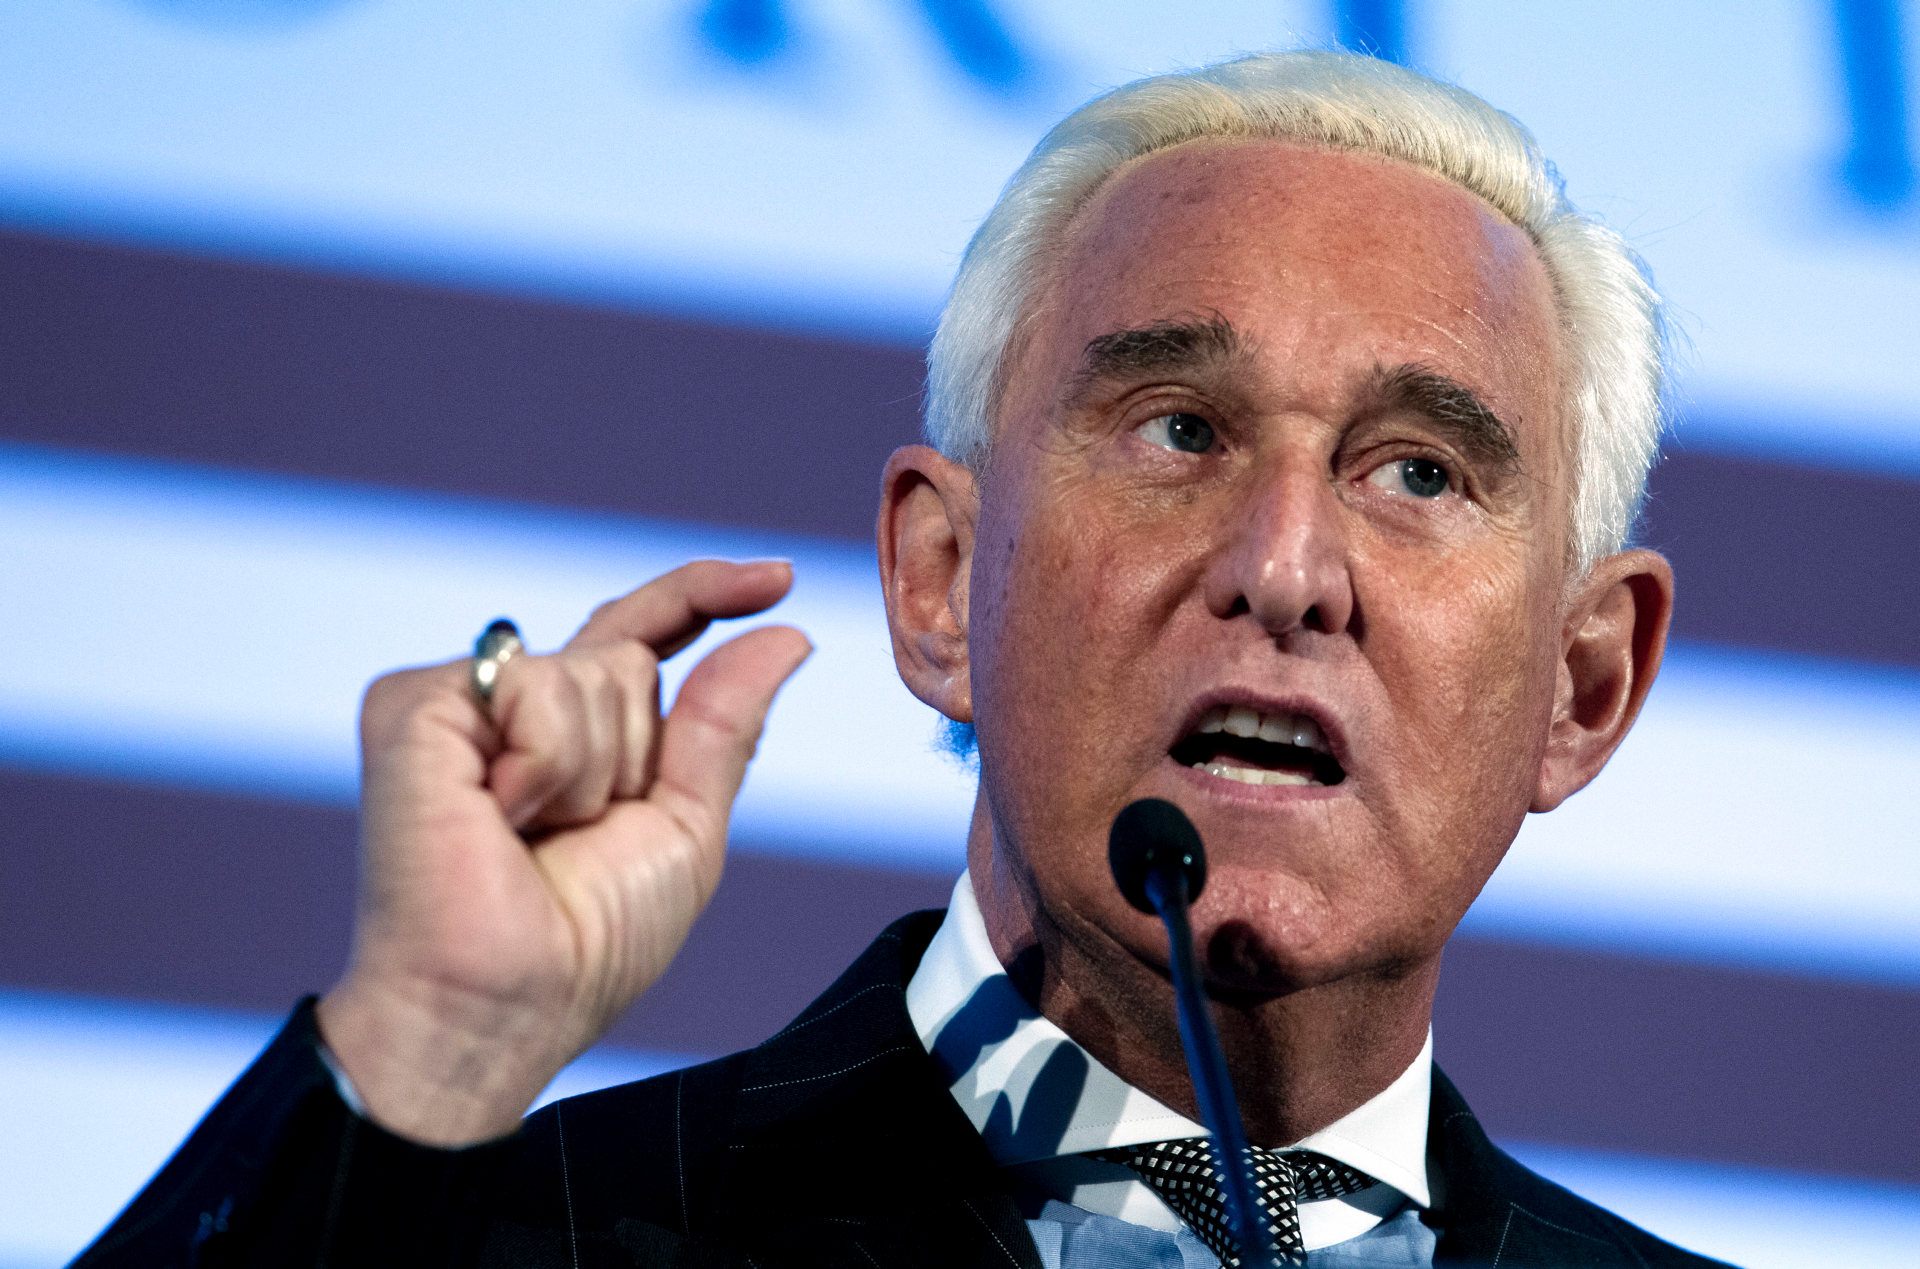 Judge orders DOJ to produce unredacted parts of Mueller report about Roger Stone - Fox News